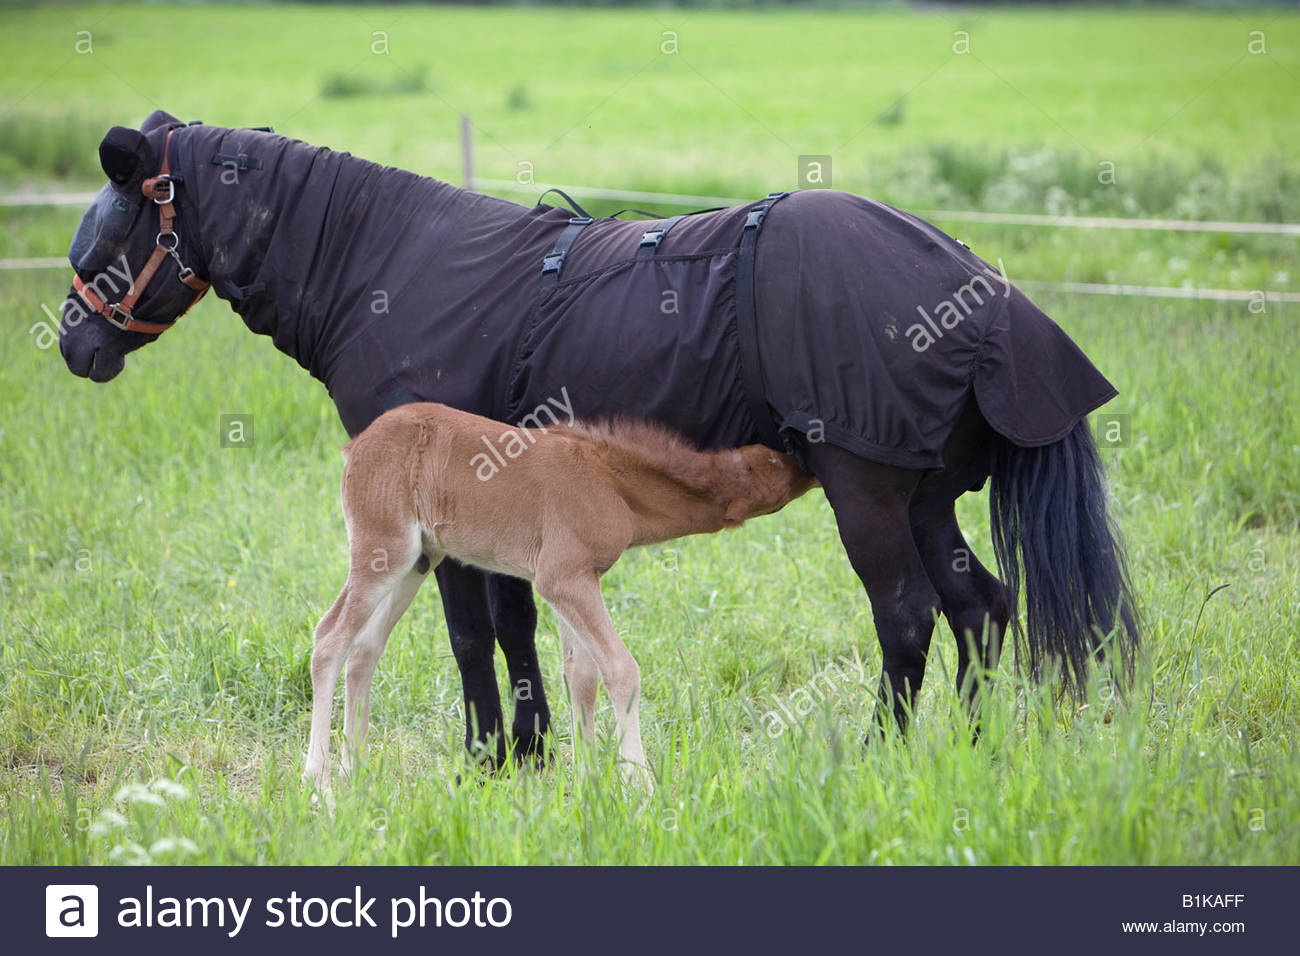 A four day old foal of a Icelandic horse gets milk from it s mother which is covered due of mosquitos - Stock Image